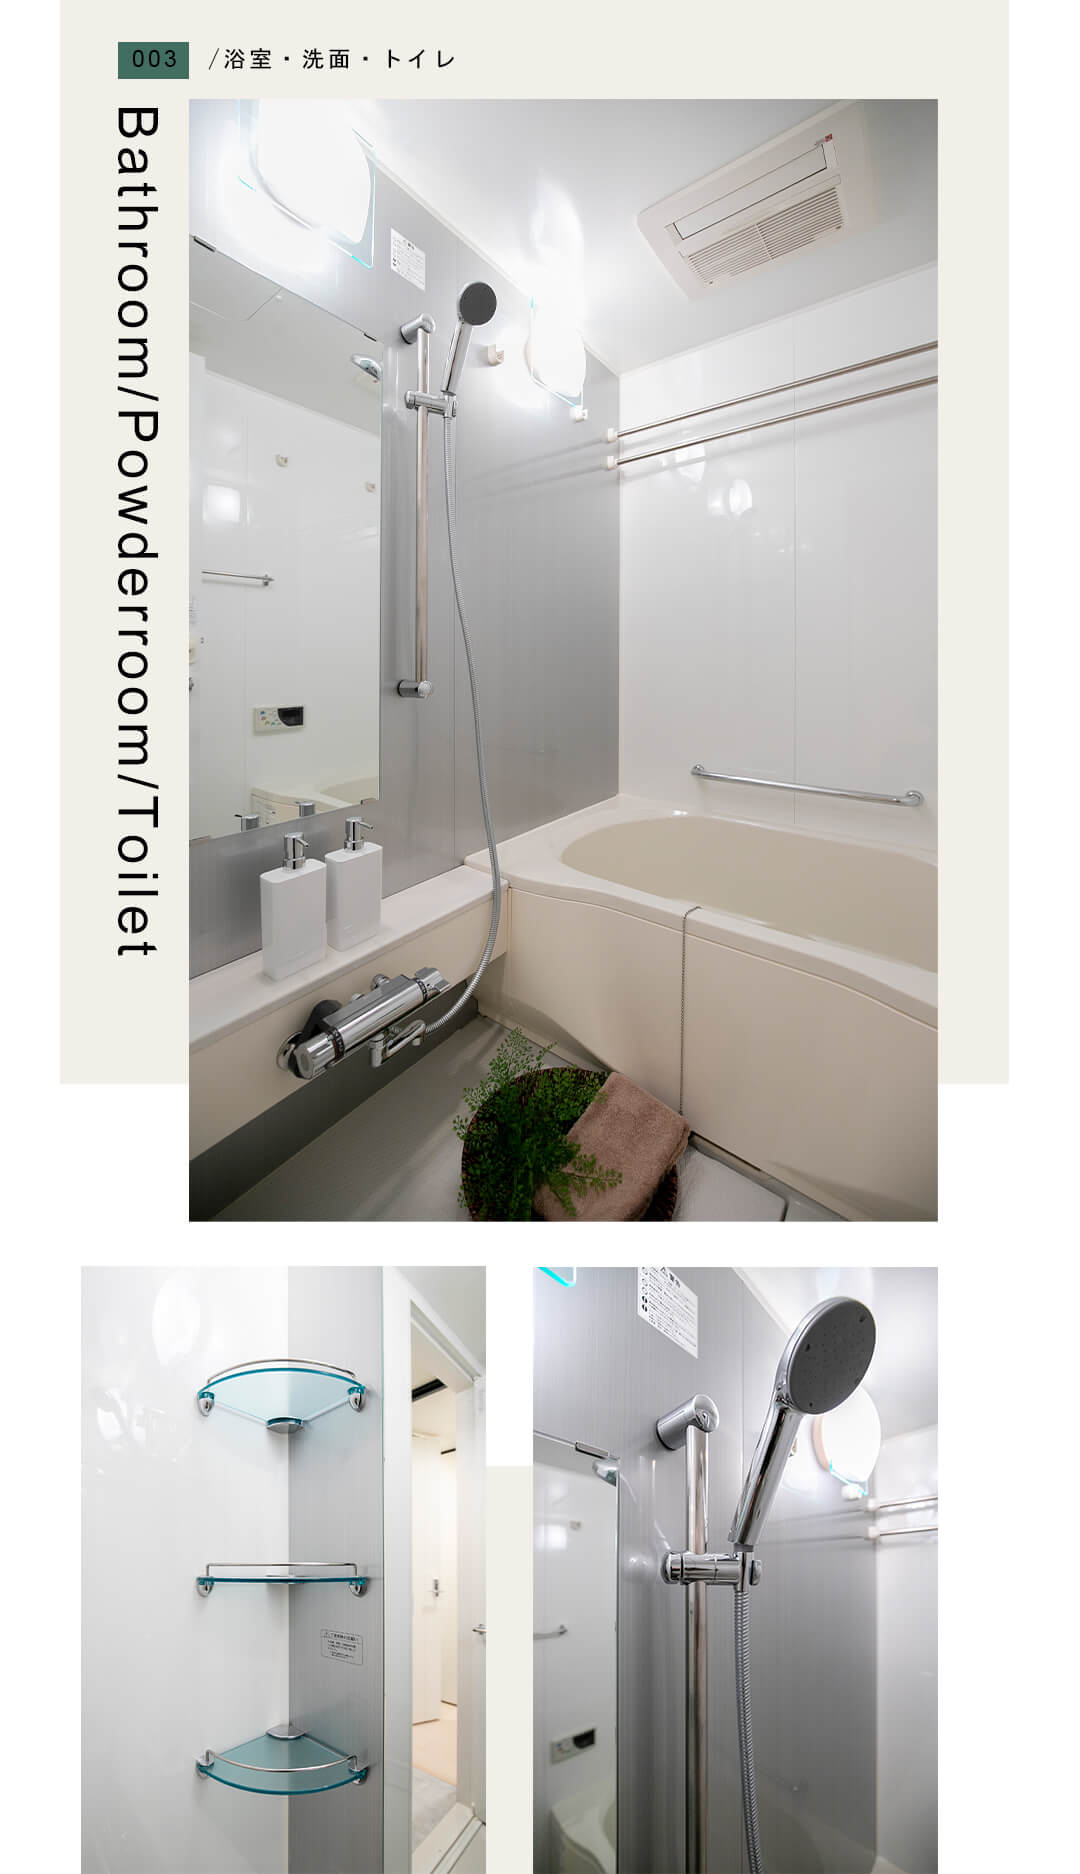 003浴室,洗面,トイレ,Bathroom,Powderroom,Toilet